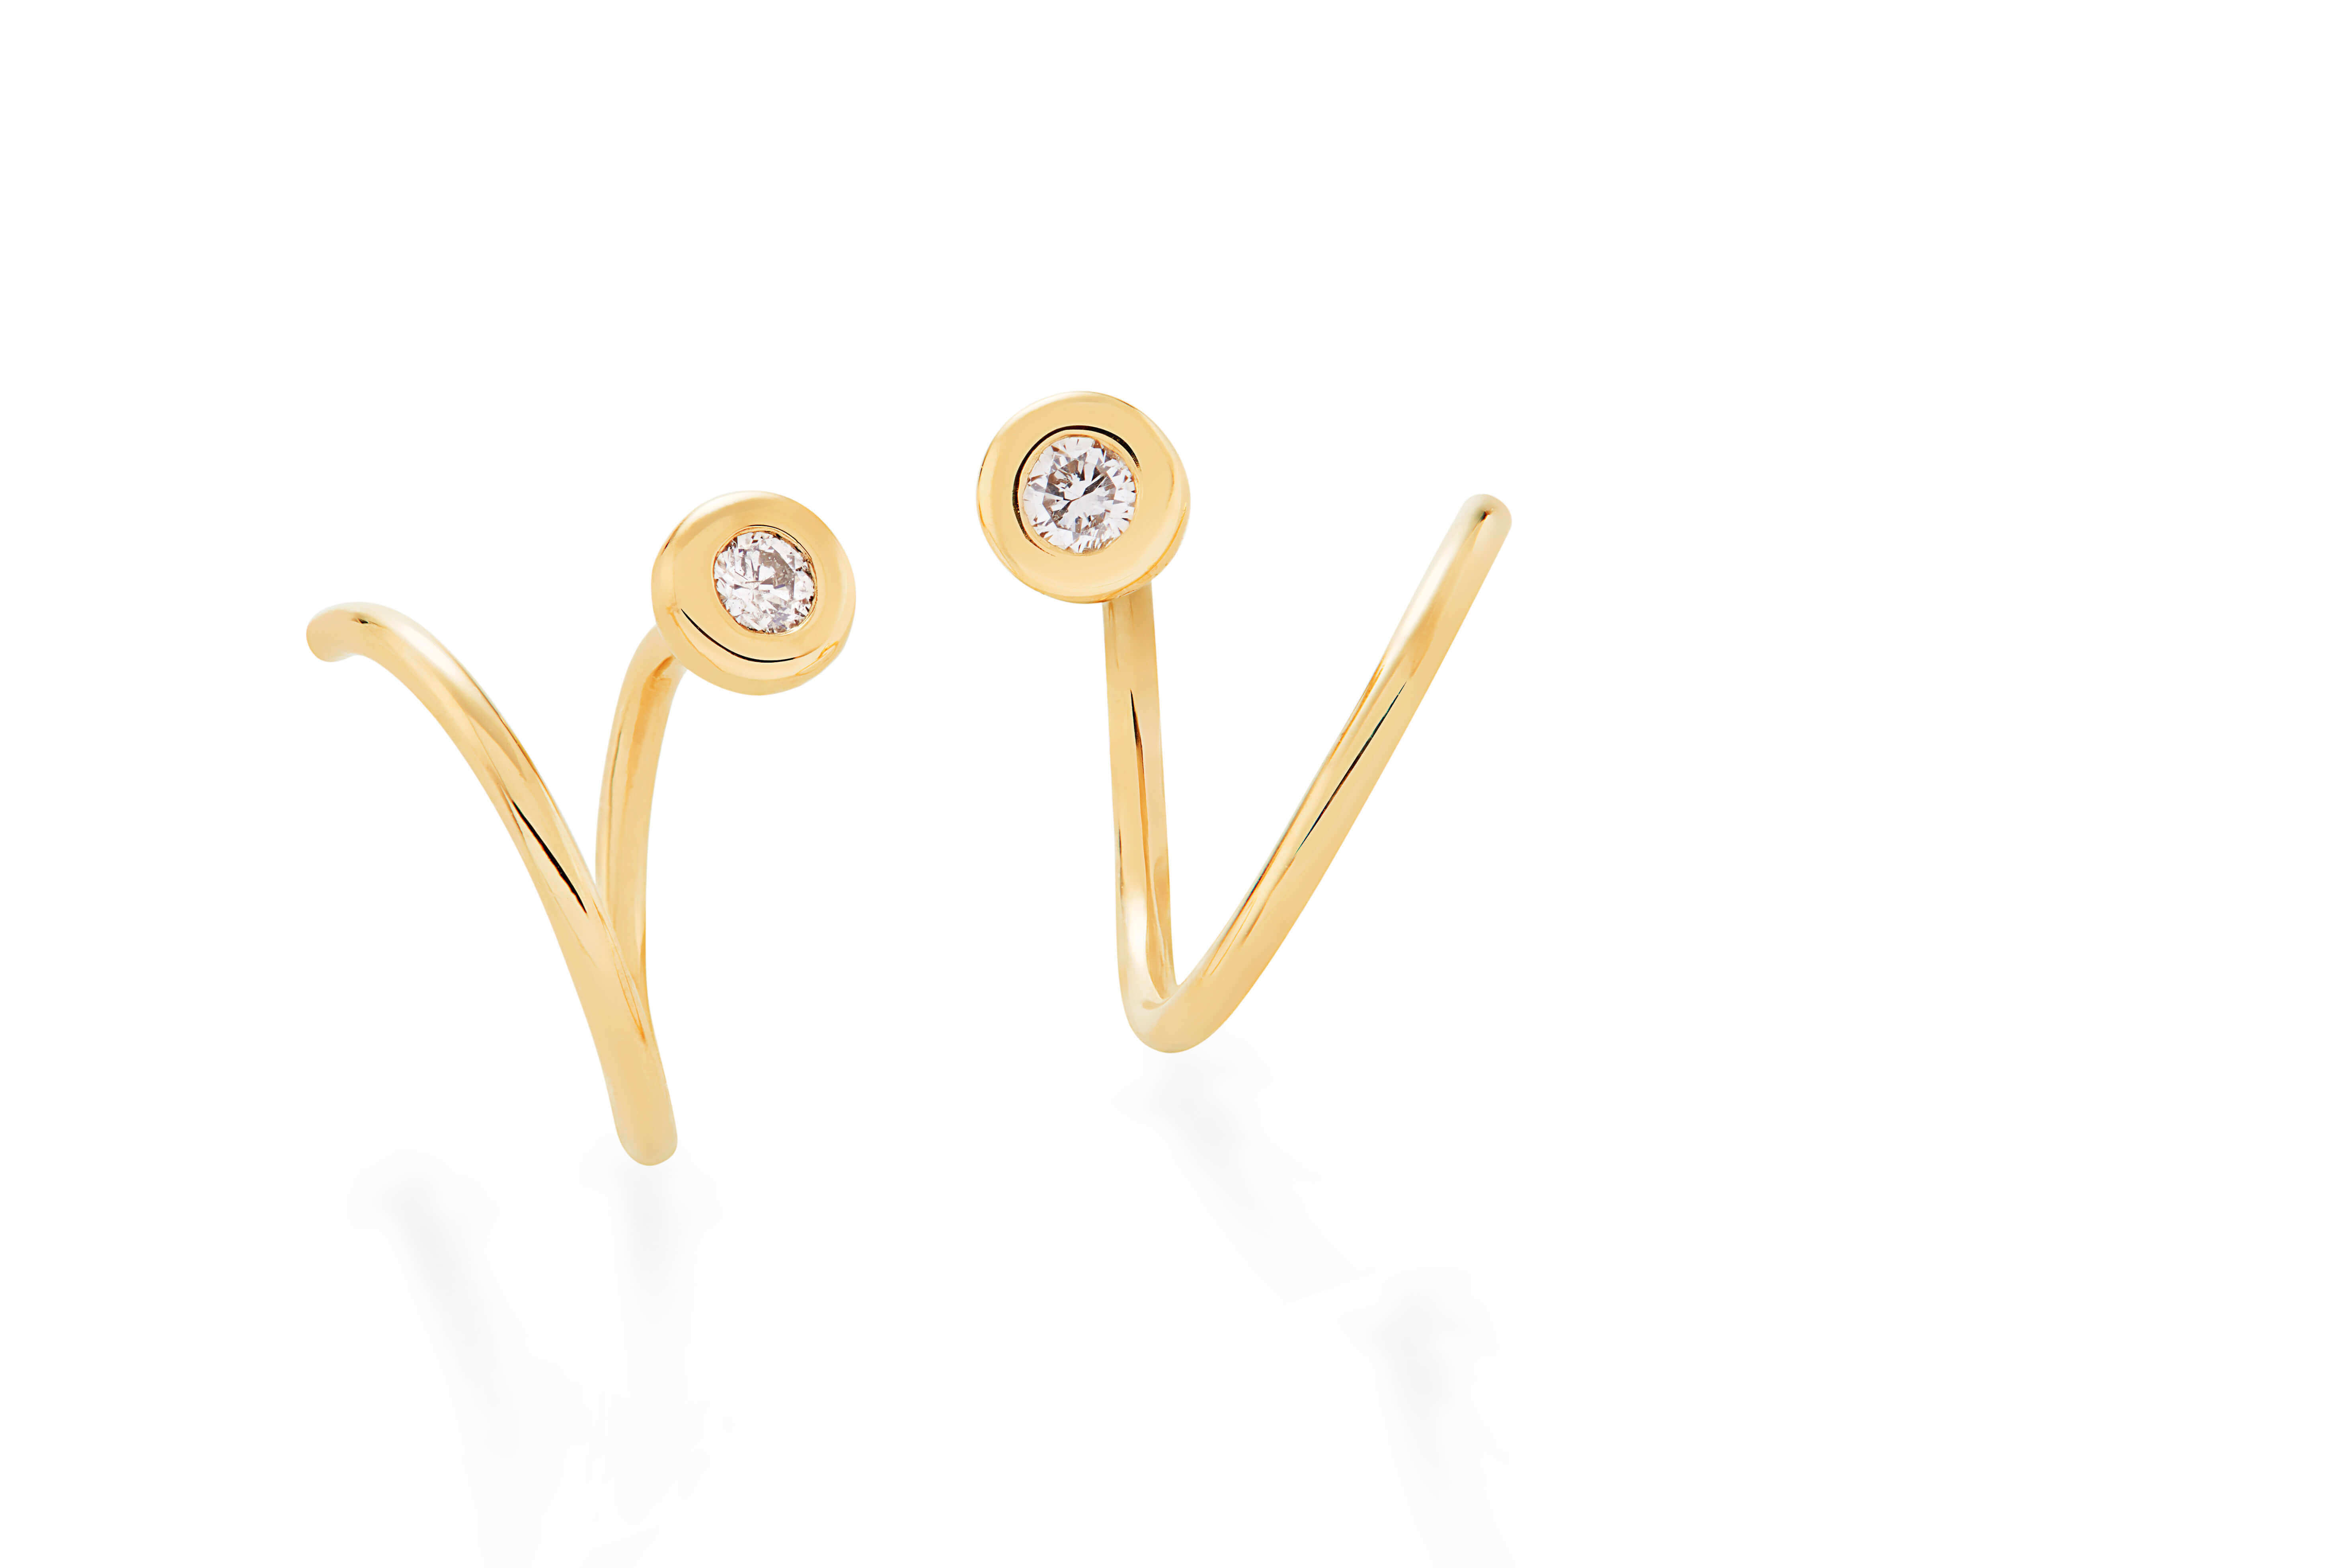 MyCollection_H.Stern_-_earrings_in_18K_yellow_gold_with_diamonds_accents_(B2B_209478)